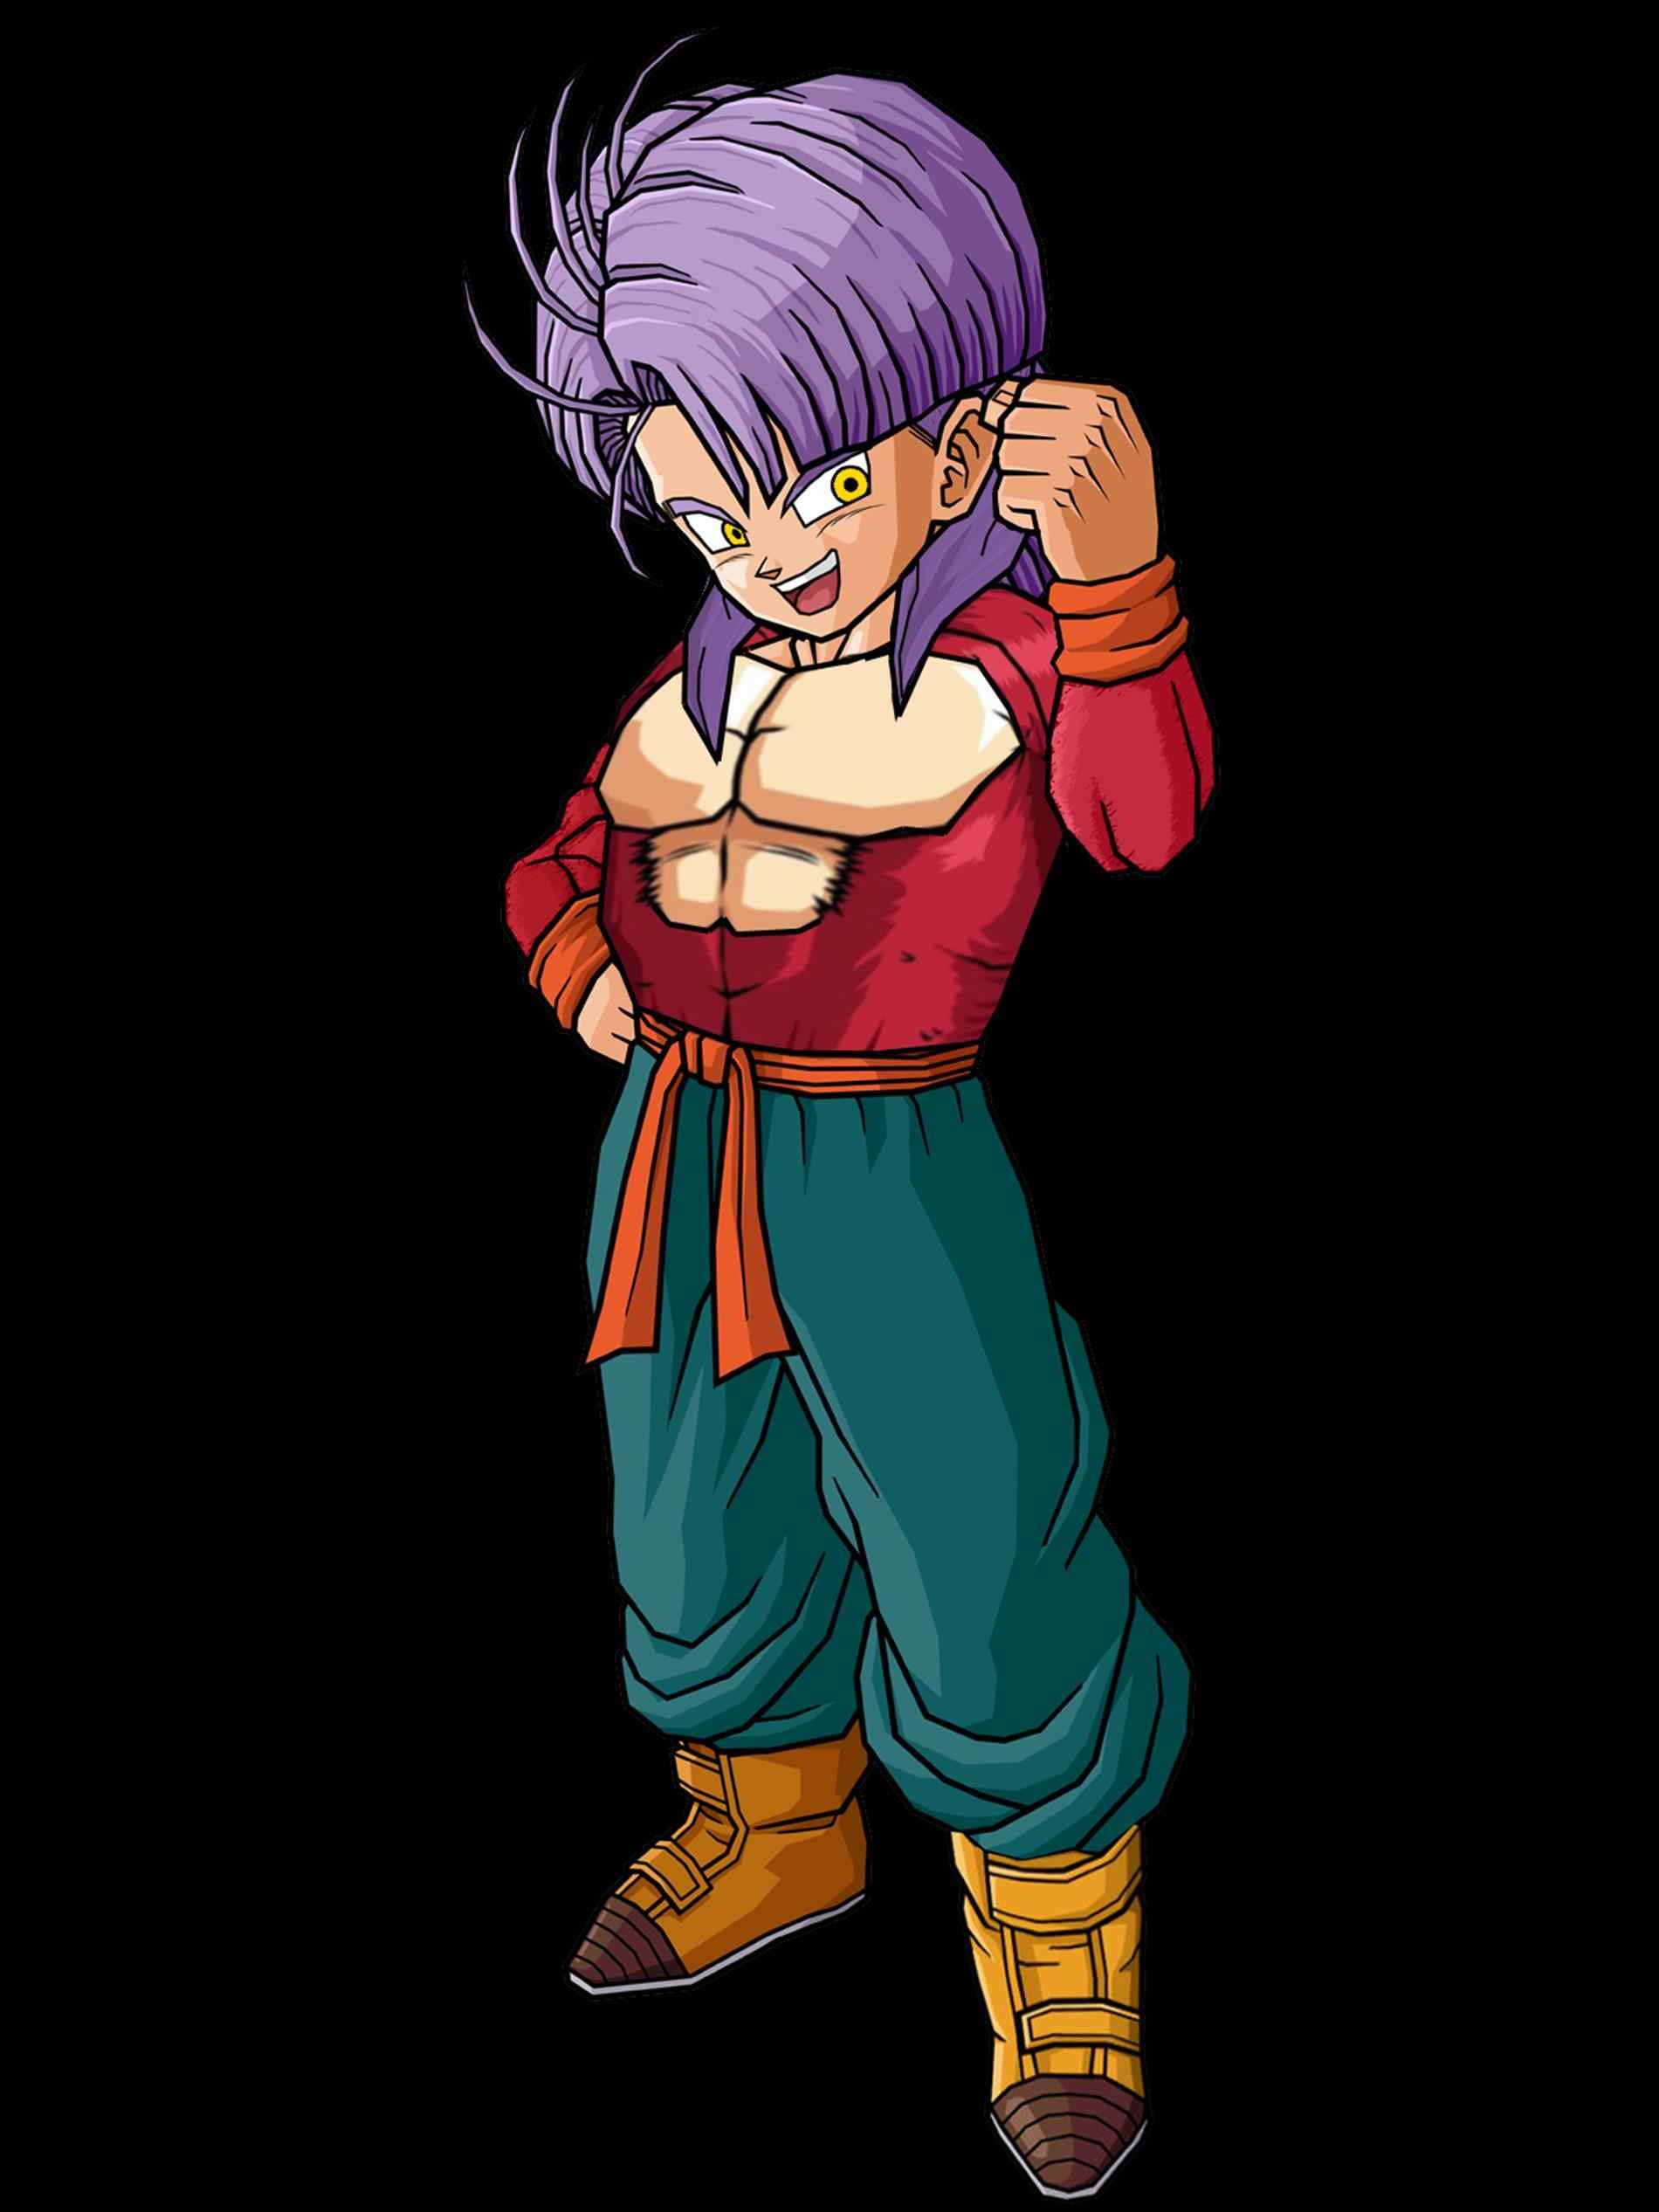 Gotenks wallpapers 59 images - Teen gohan wallpaper ...